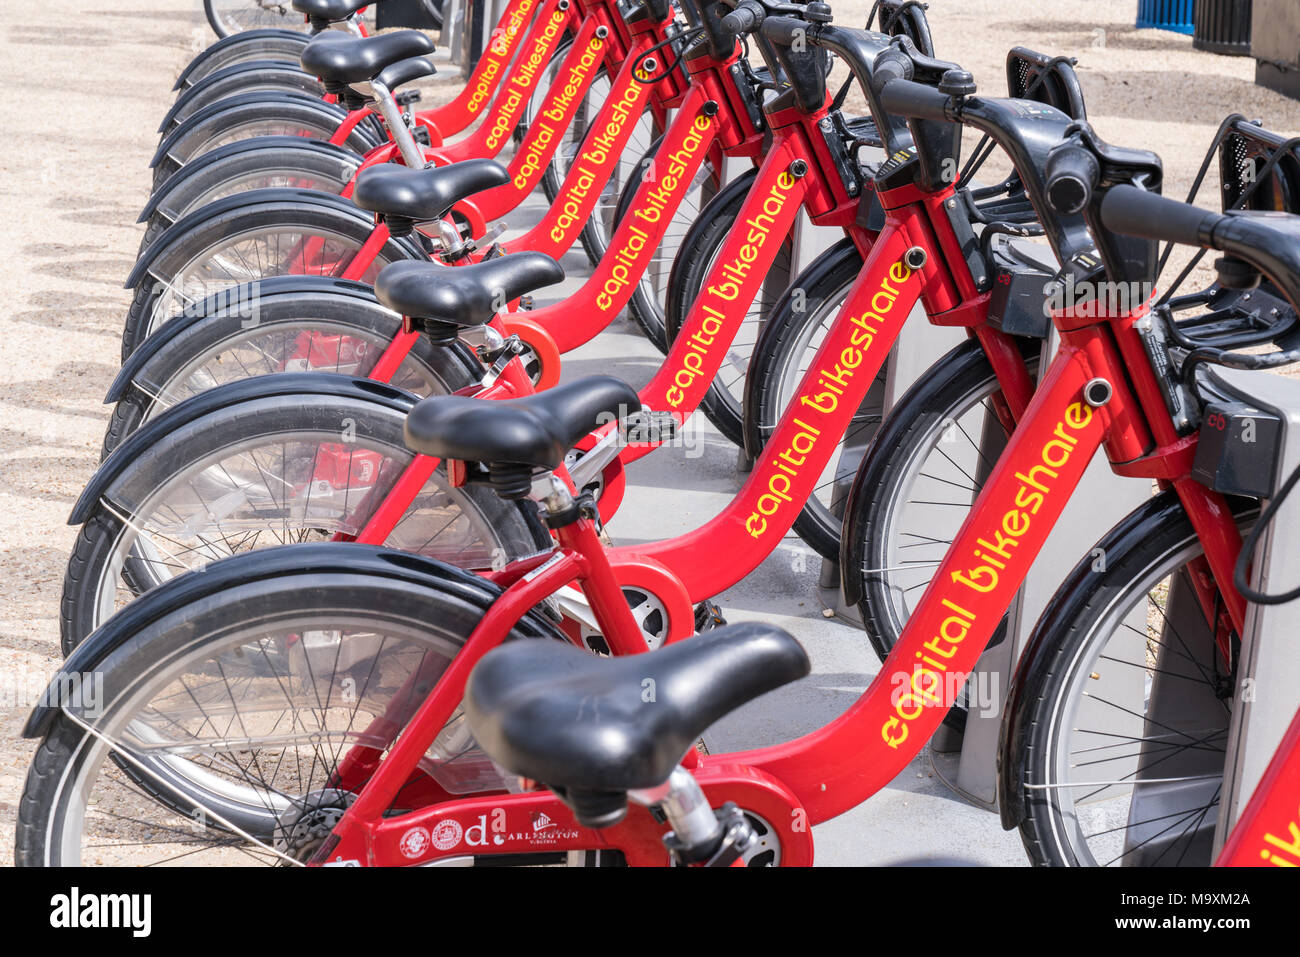 WASHINGTON, DC - MARCH 14, 2018: Bicycles lined up at a Capital Bikeshare station in Washington, DC - Stock Image